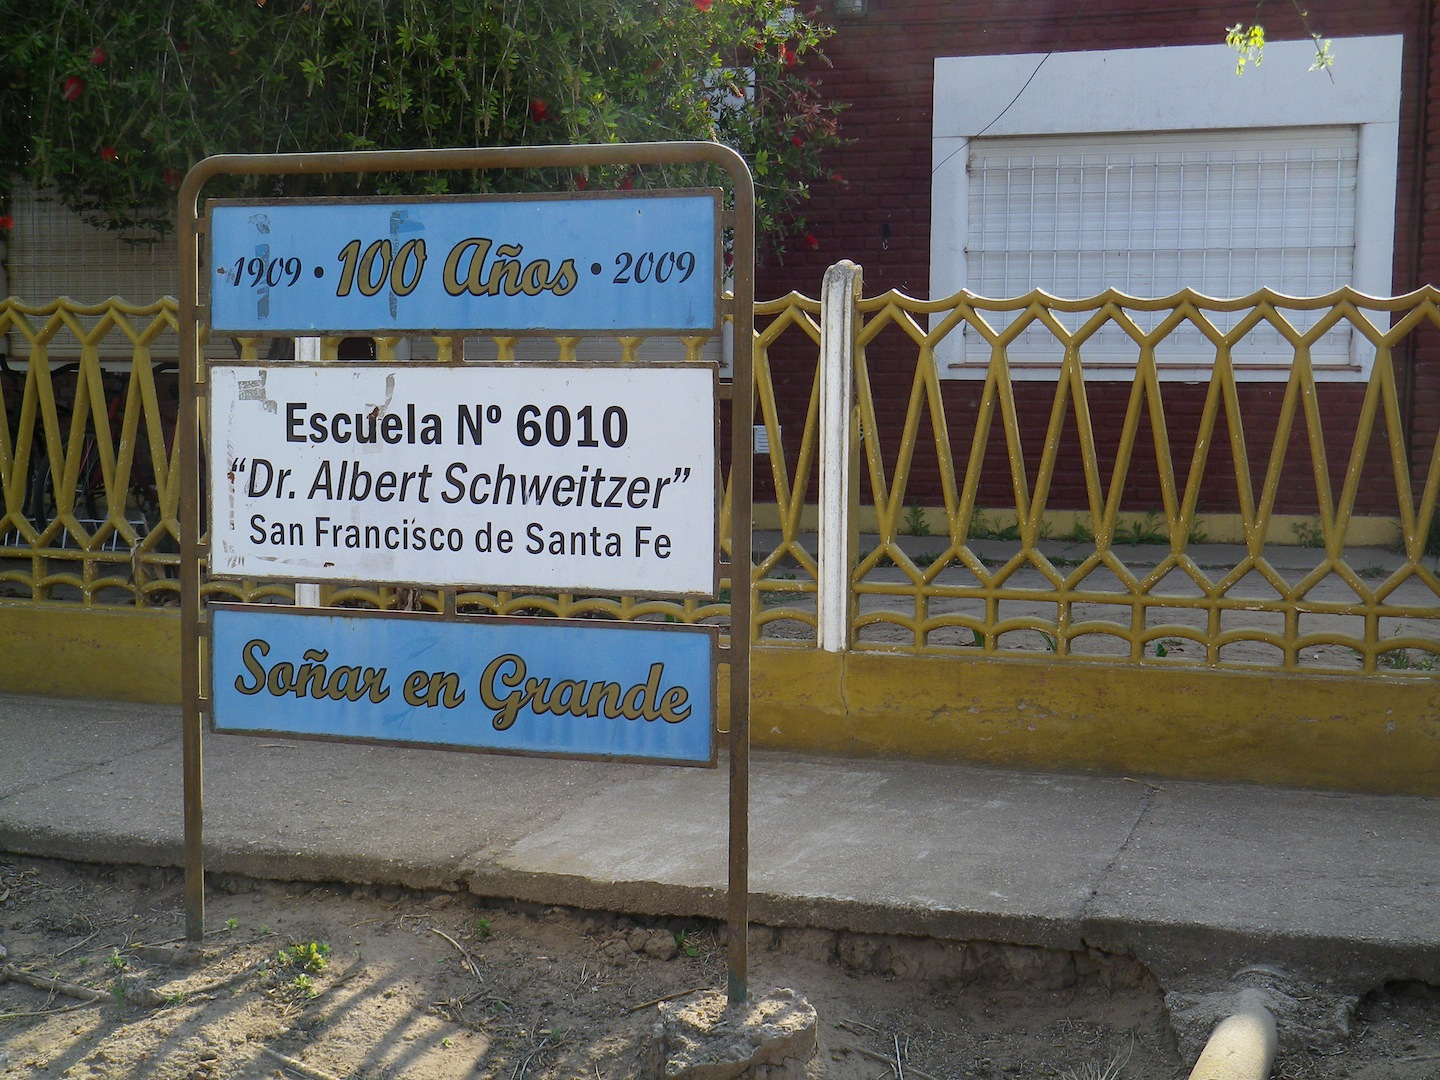 Partner school in the Santa Fe province